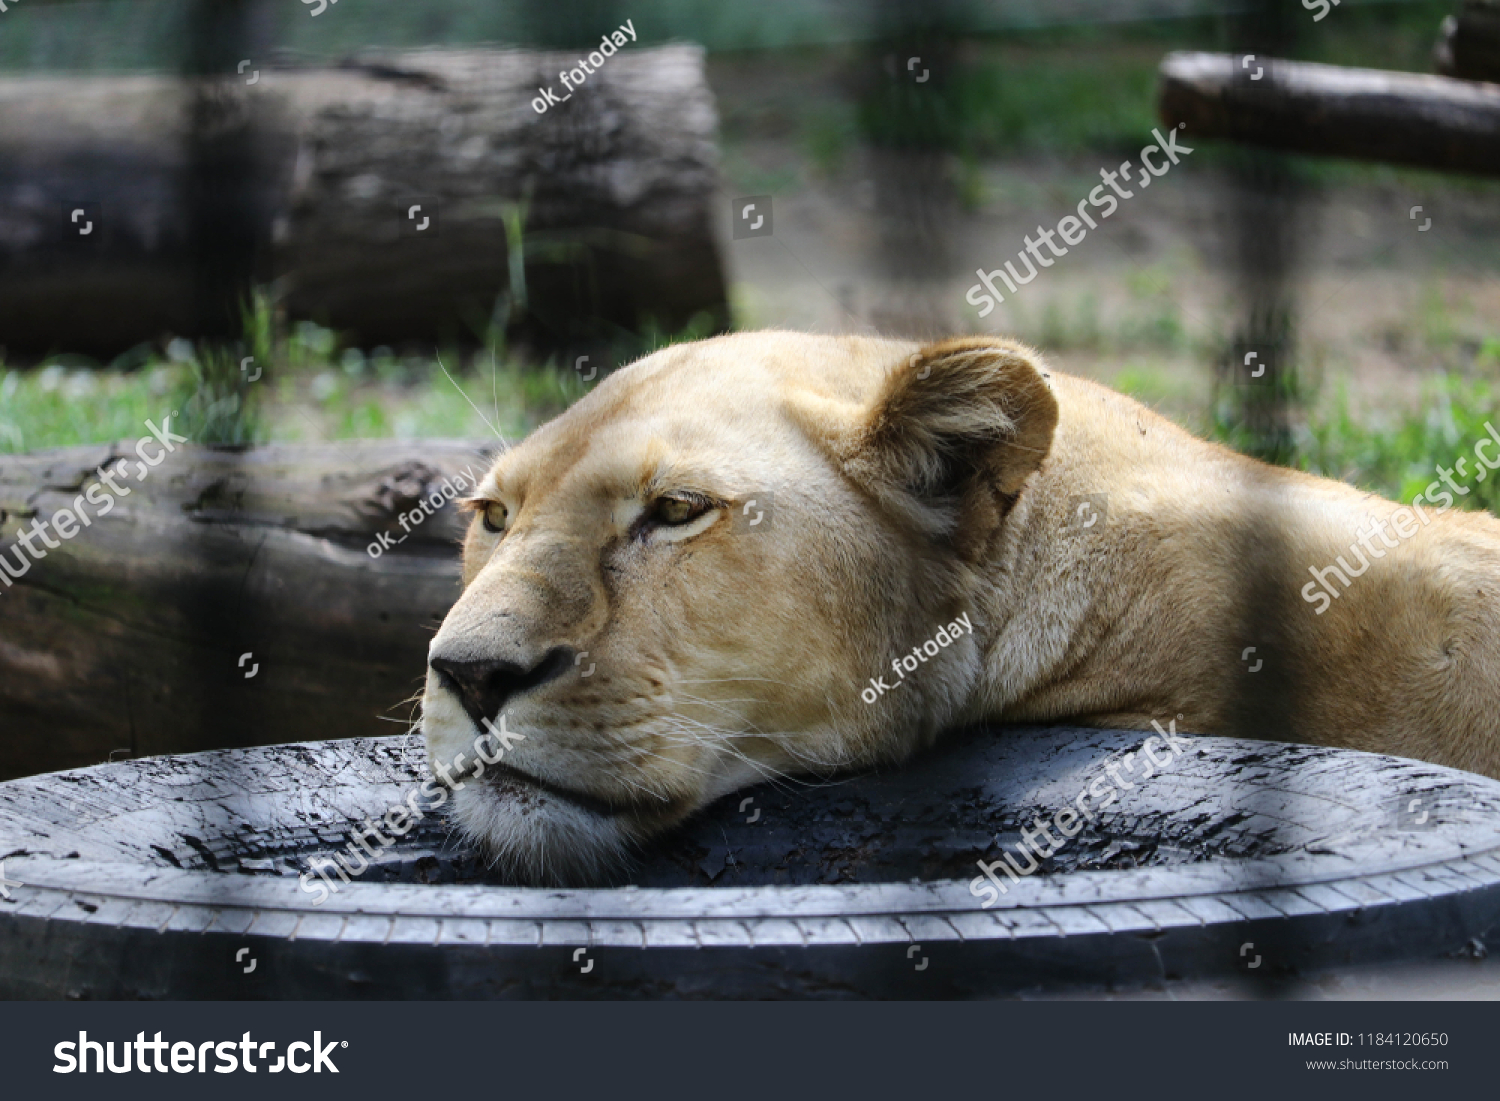 The lion is resting. Zoo of Lake Palic, Serbia, September 2, 2018